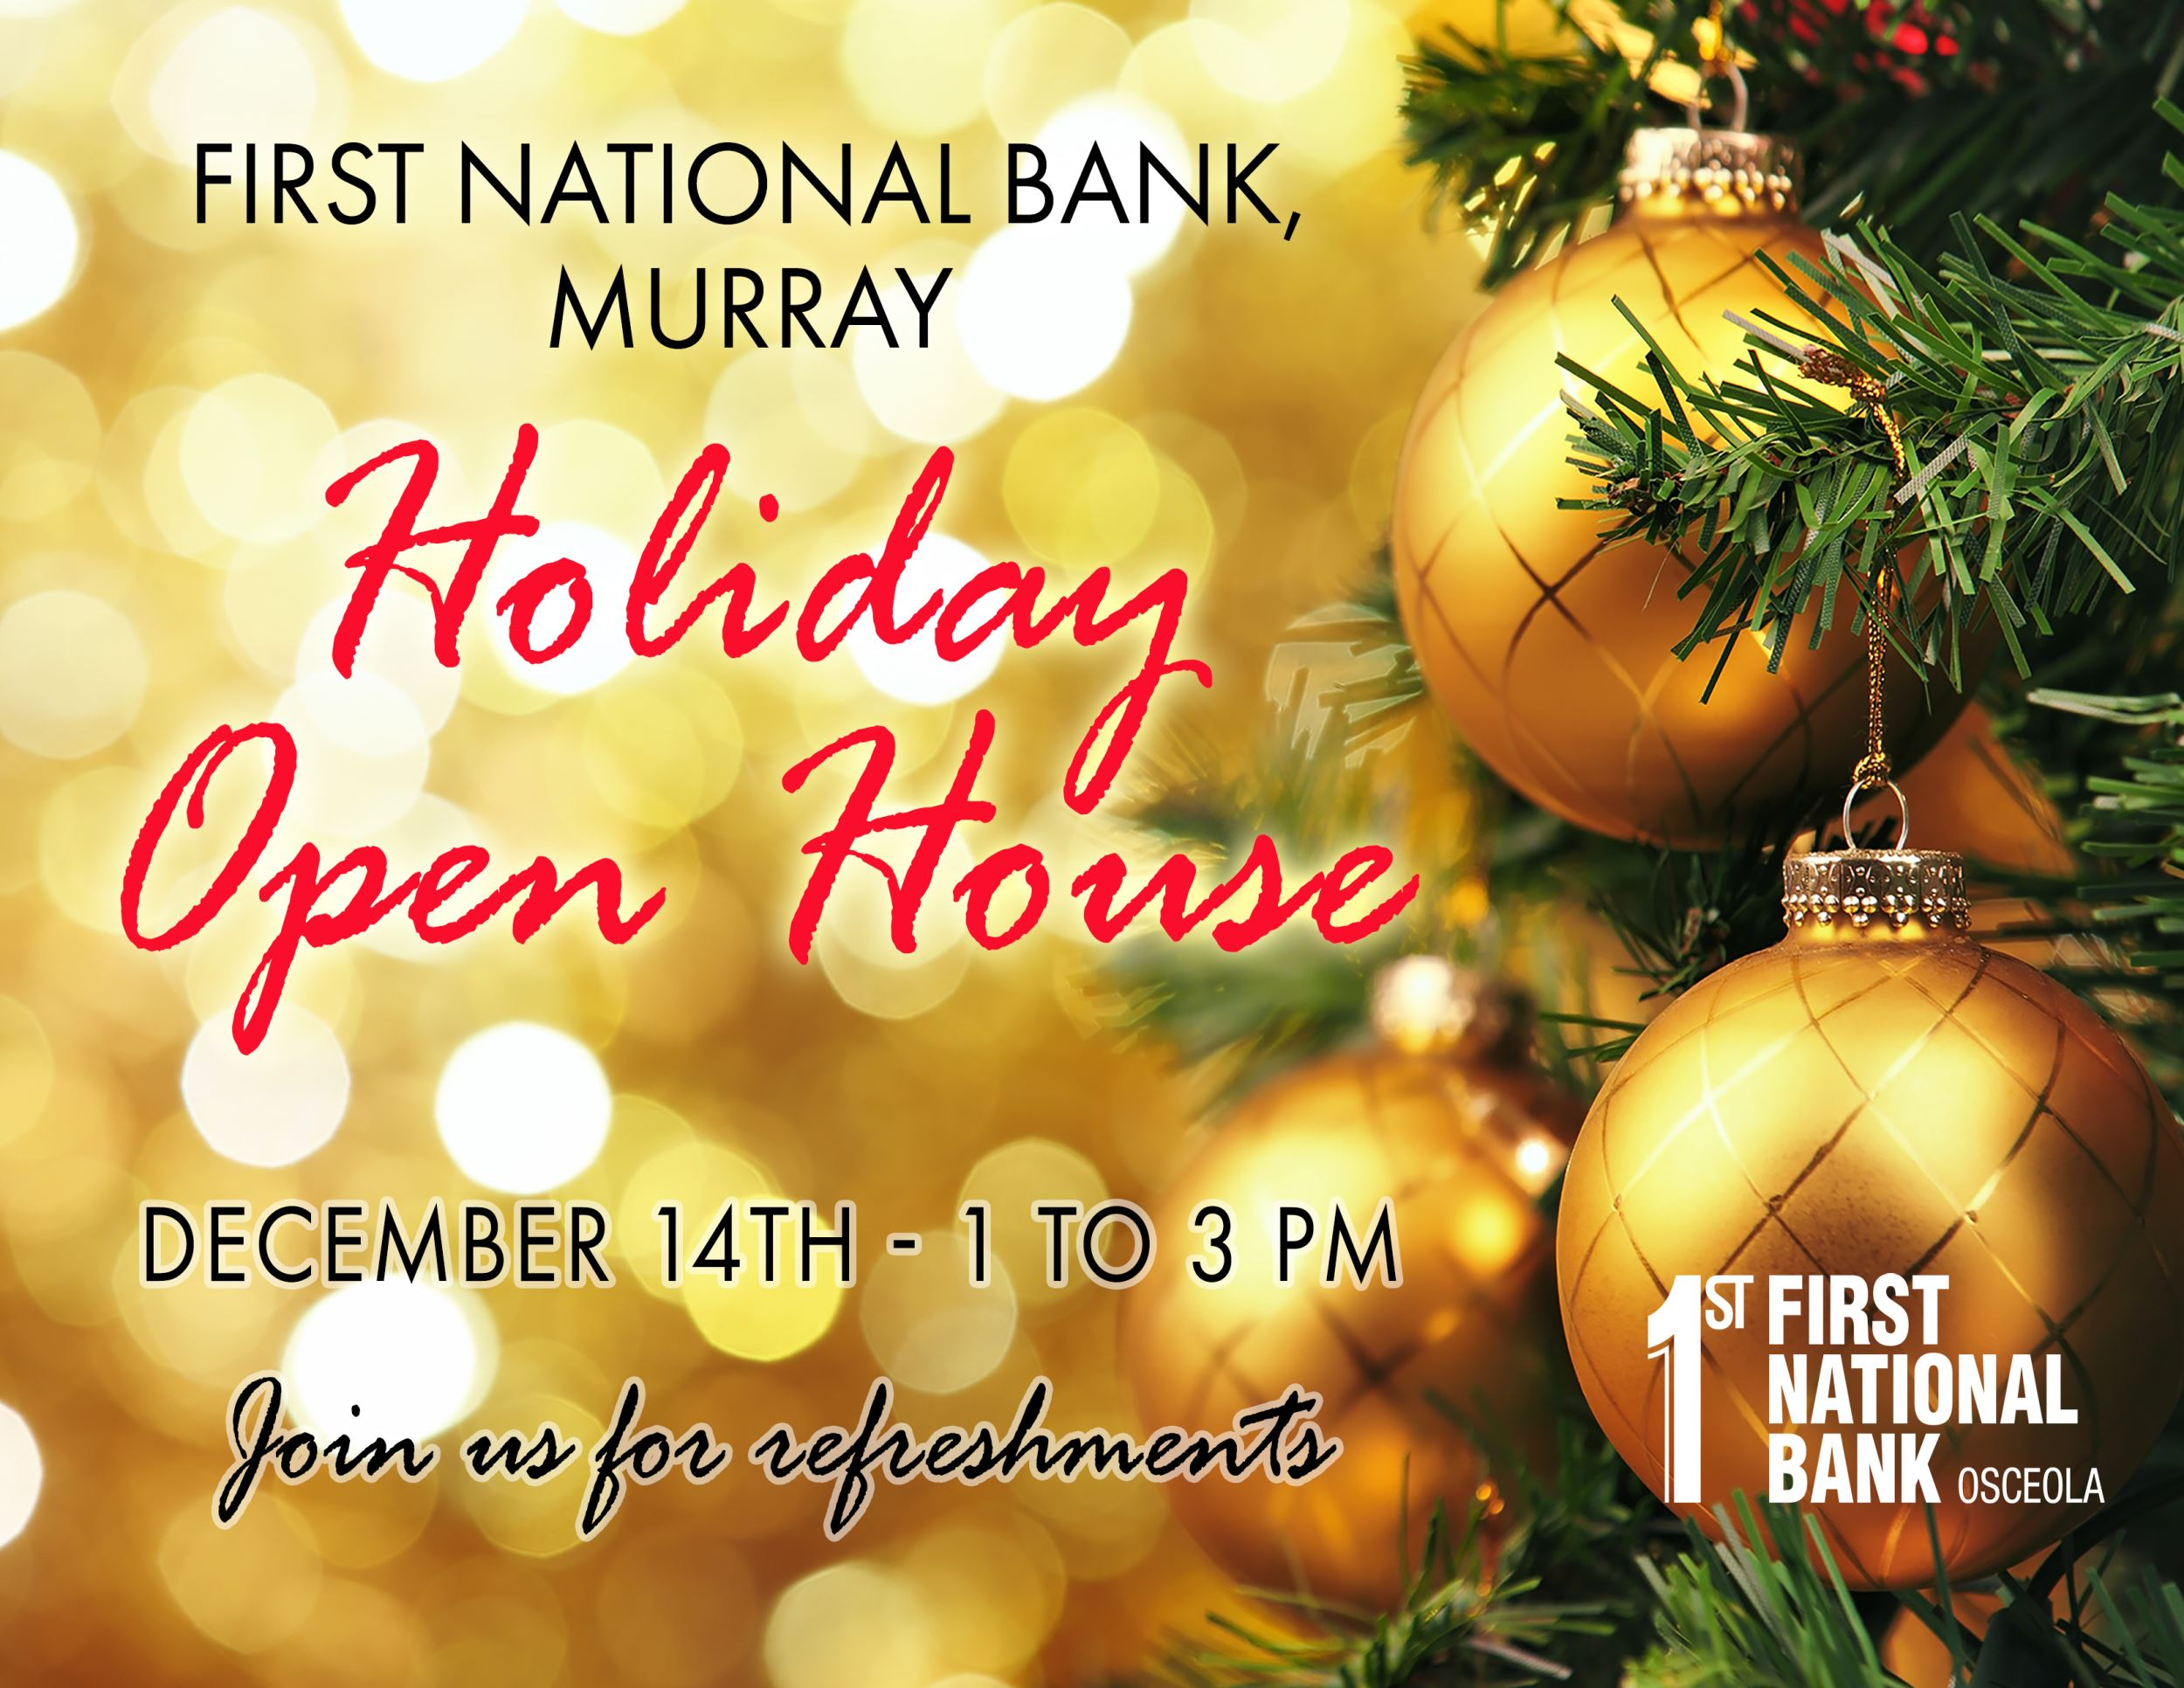 Murray Holiday Open House First National Bank